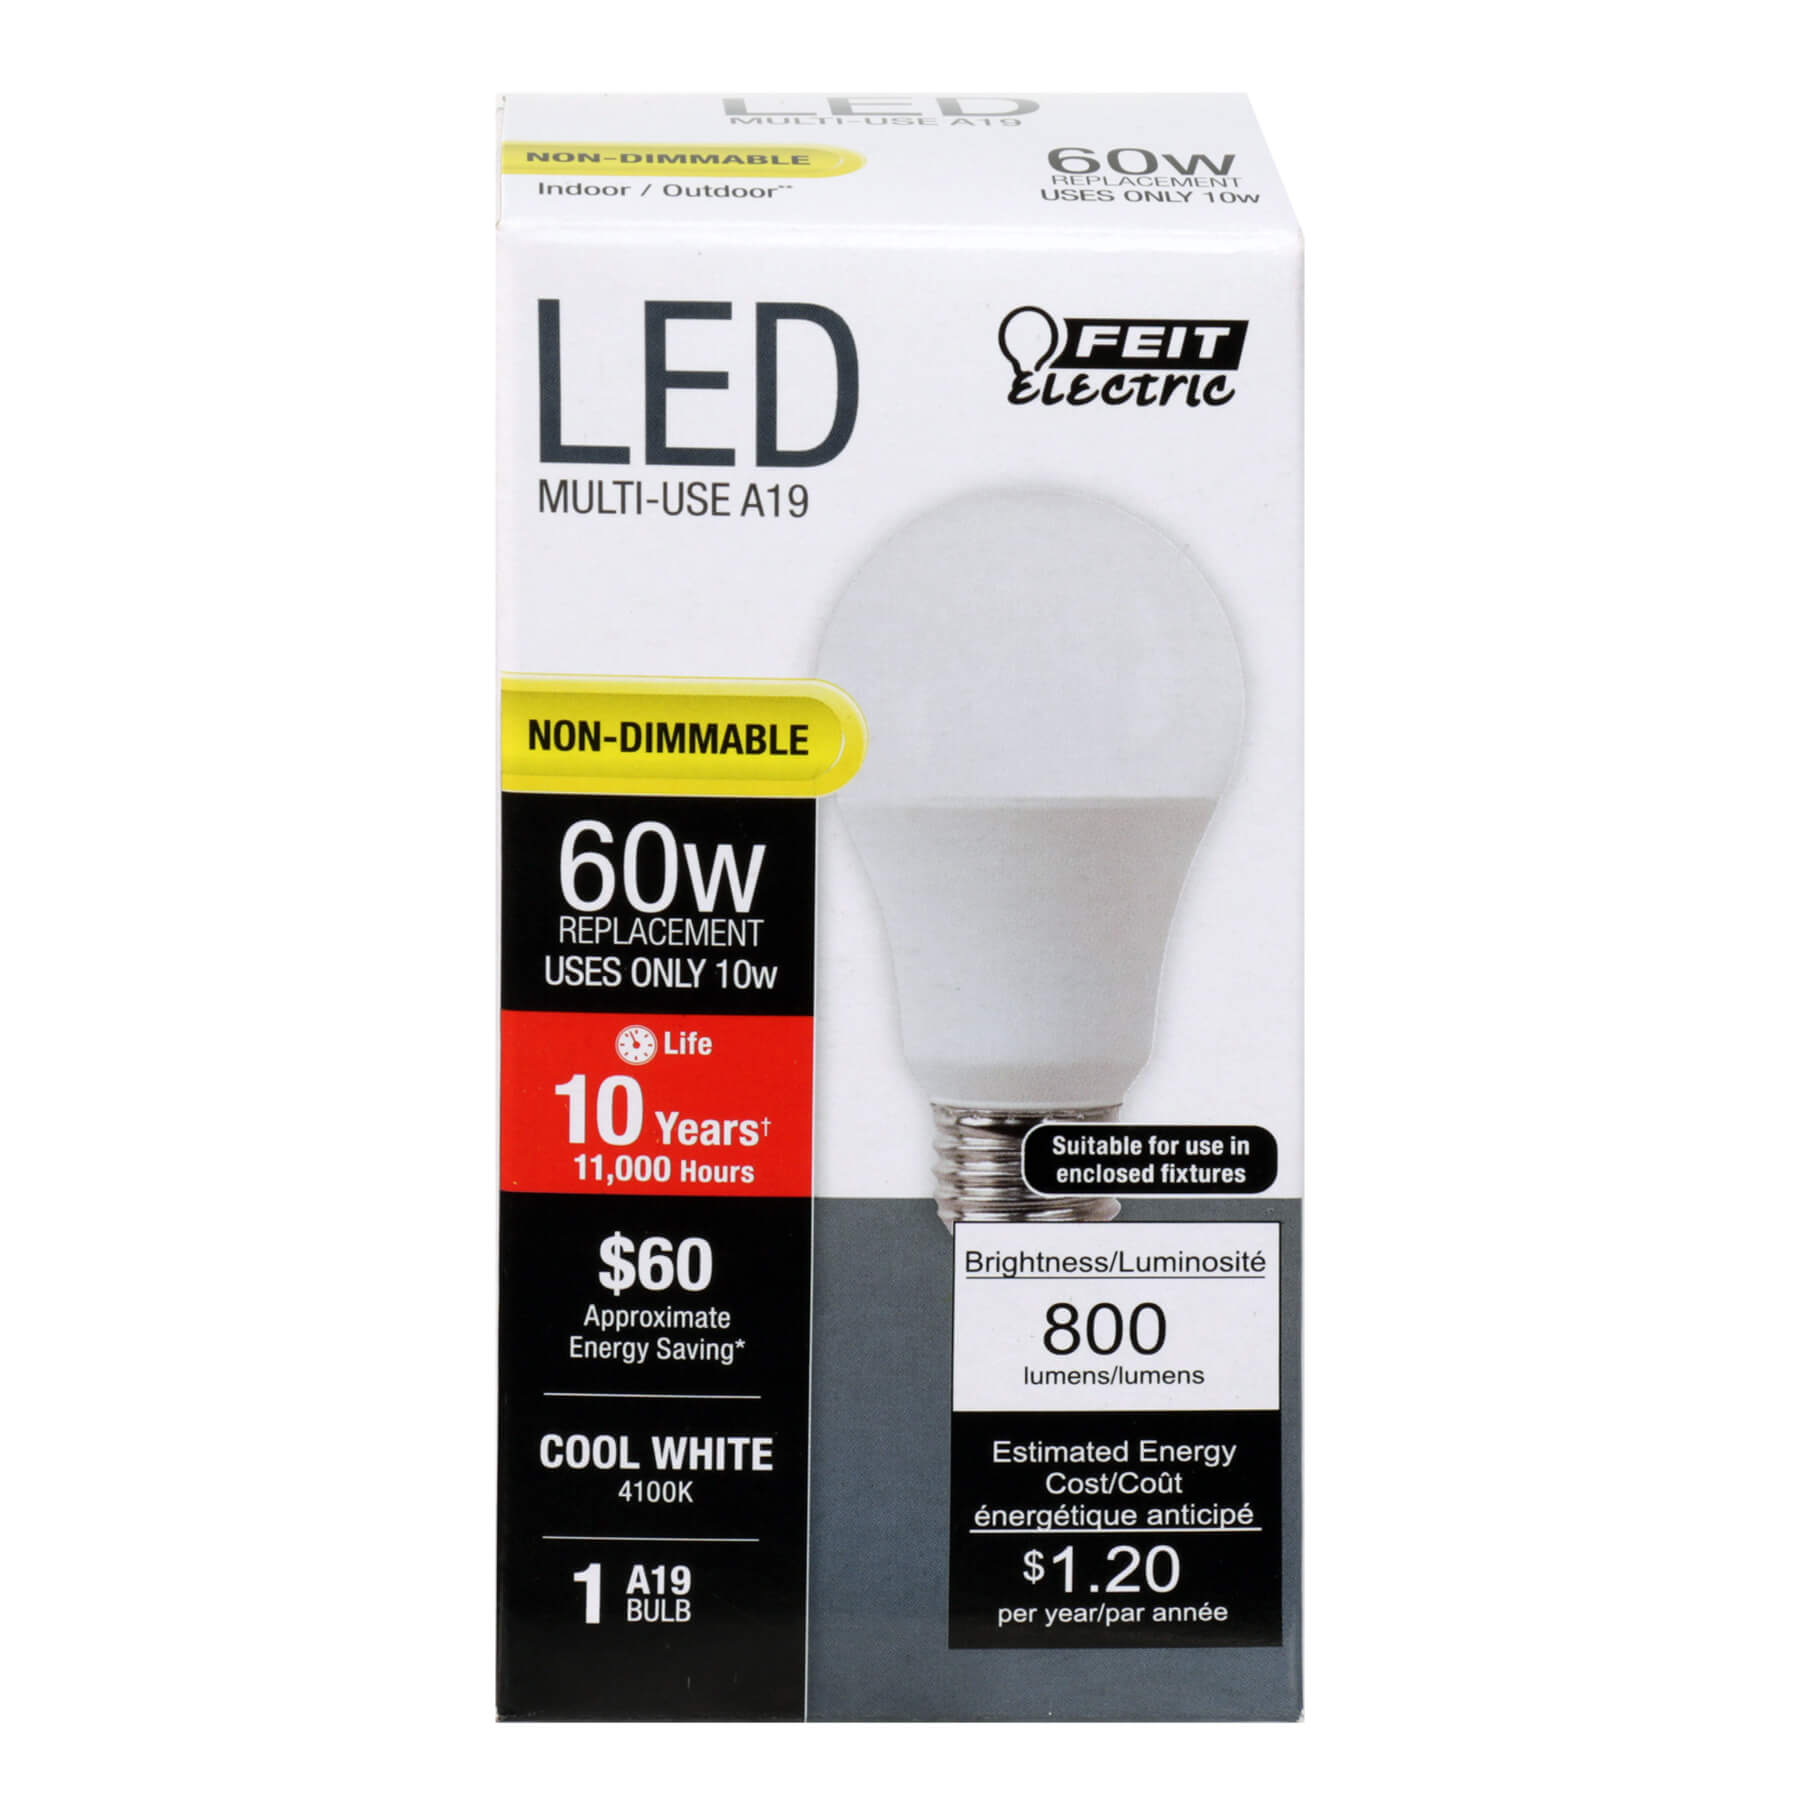 10W LED A19 (60W Equivalent) 11000hr 4100K 800 Lumen (6 Pack) 64705-FETc